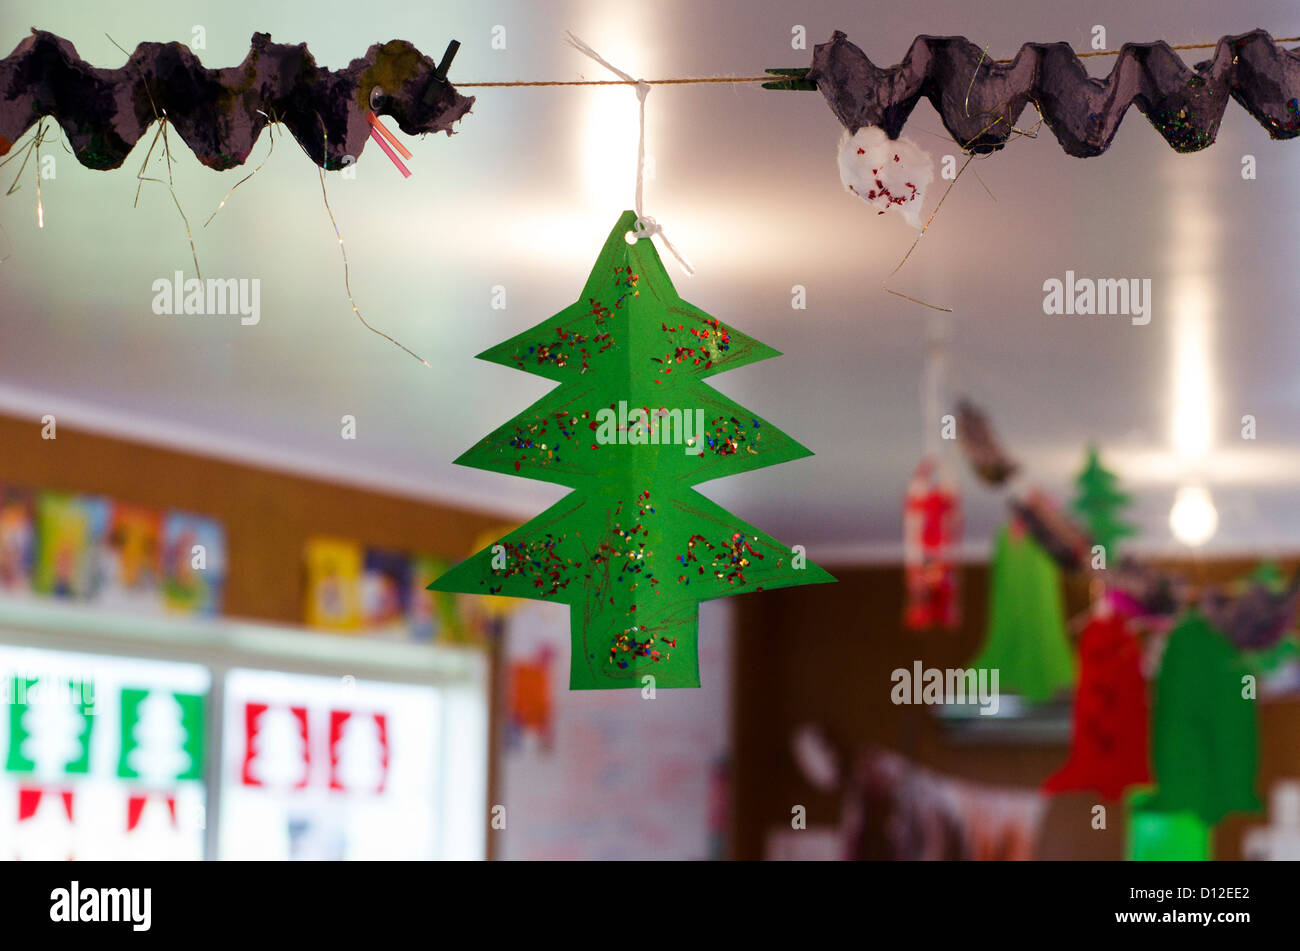 indoor decorations of xmas cut out of red and green paper